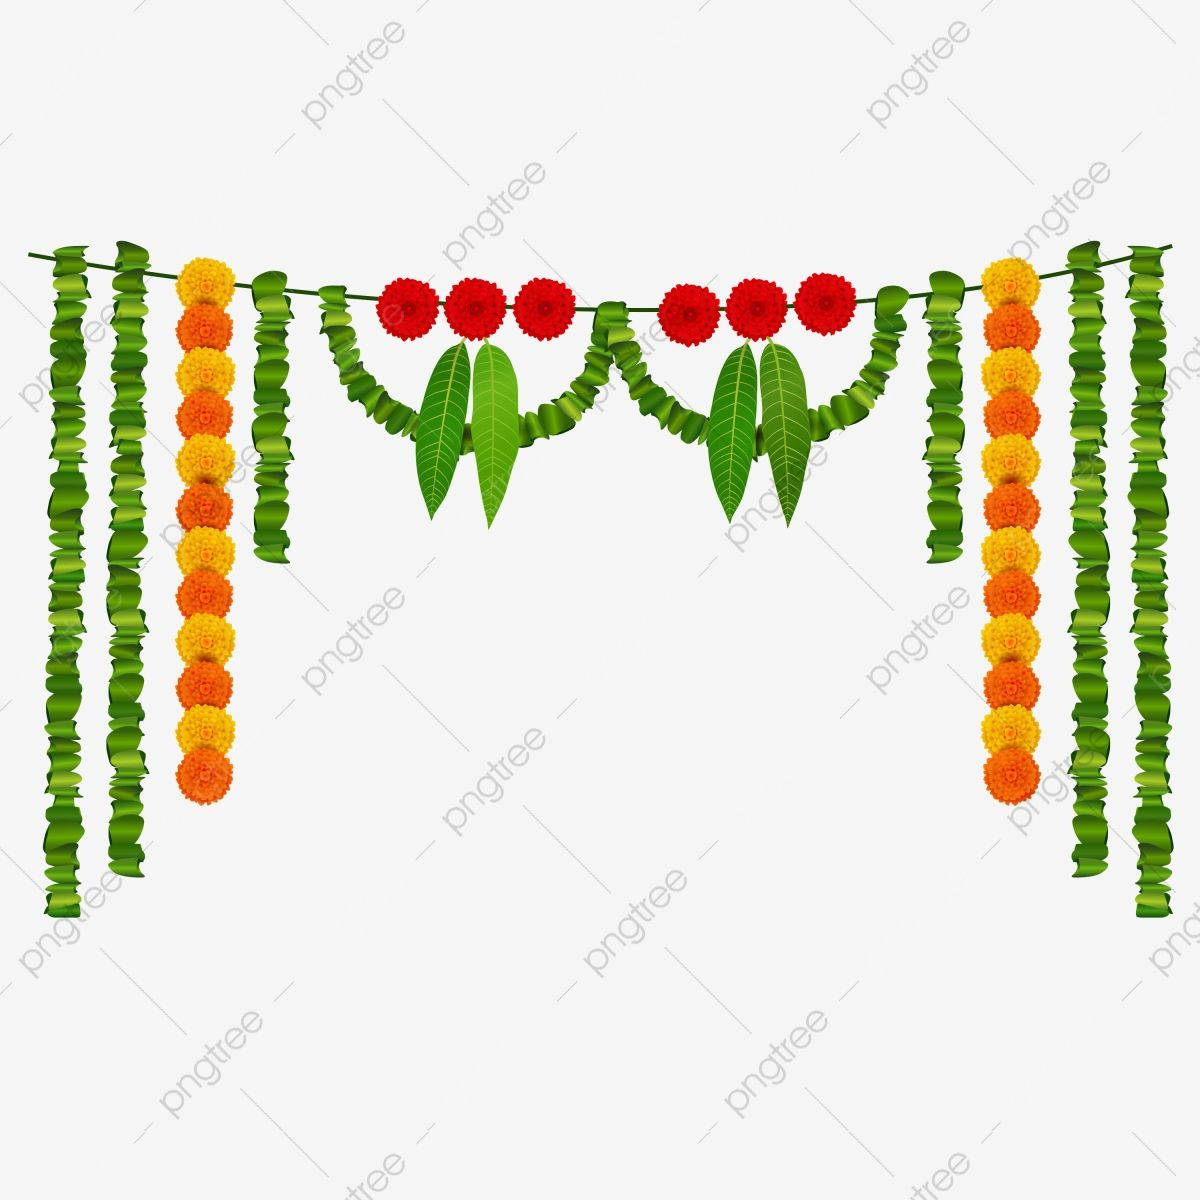 Mango Garland Marigold Garland Garland Wedding Garland Ugadi Garland Png And Vector With Transparent Background For Free Download In 2021 Flowers Black Background Wedding Photography Album Design Photoshop Backgrounds Free